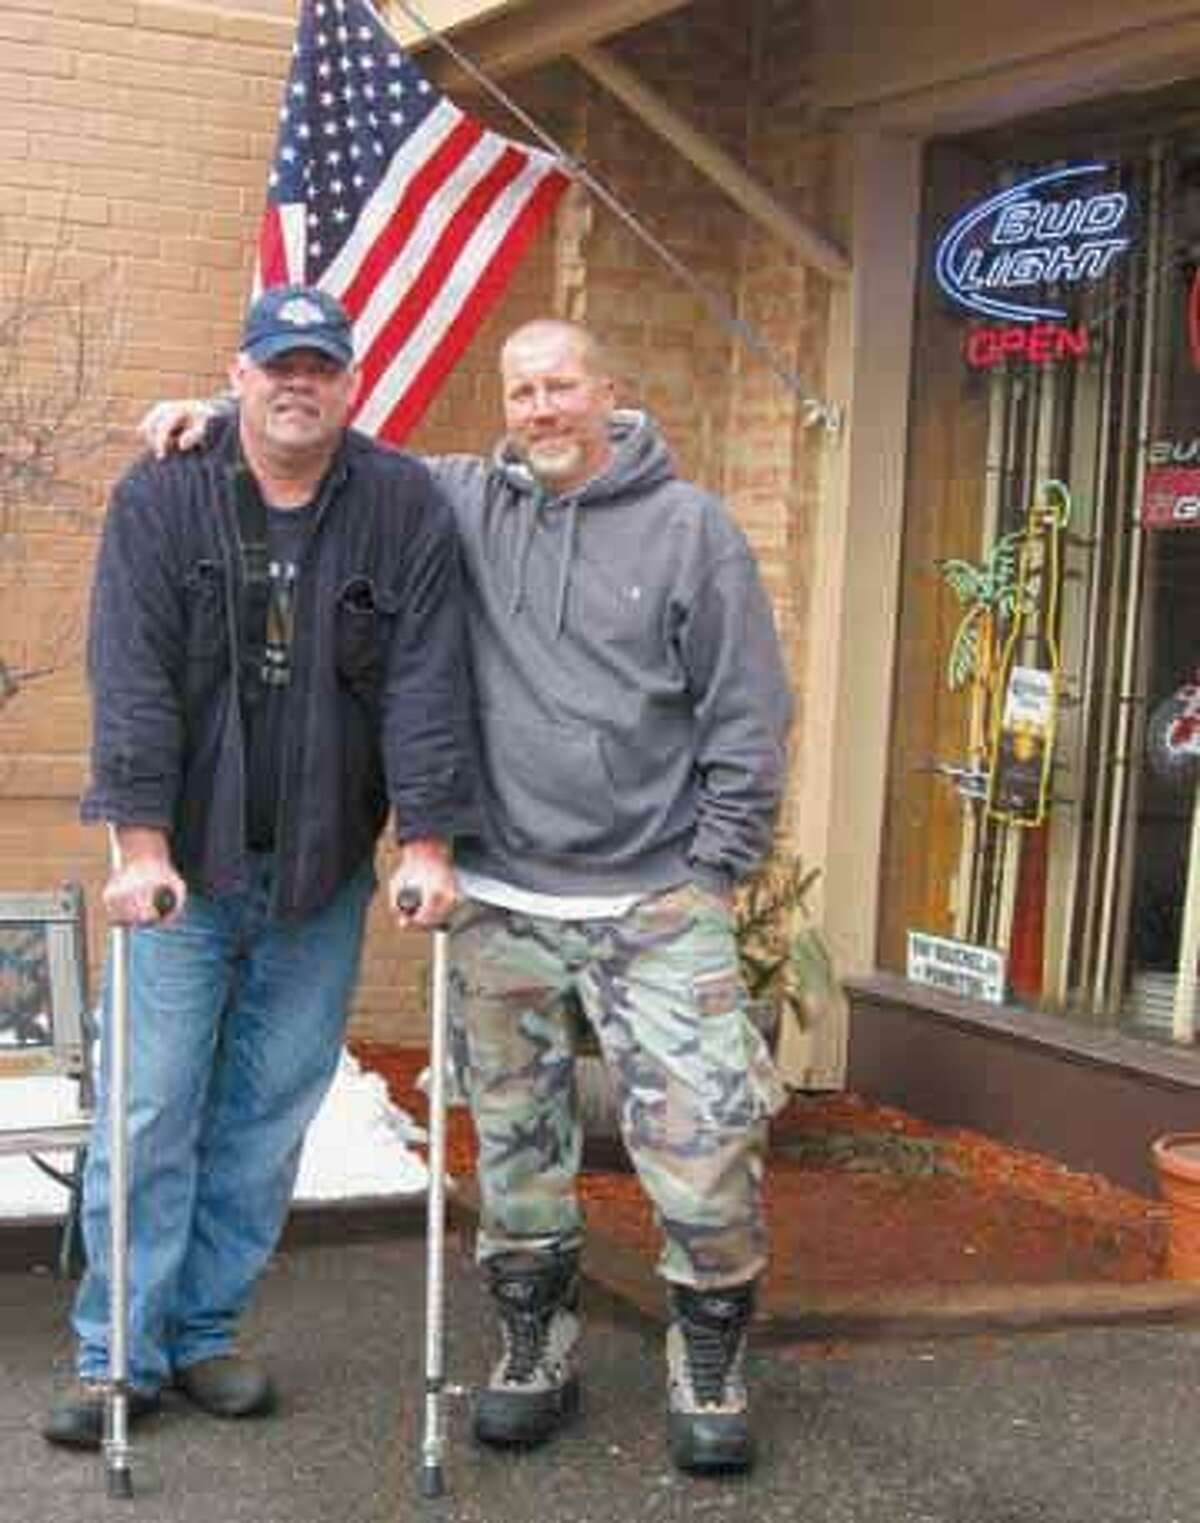 Lifelong friends Dwayne Paige and Ray Bouchez, owner of Billy Ray's Café in Winsted, pose outside Bouchez's establishment. They will host